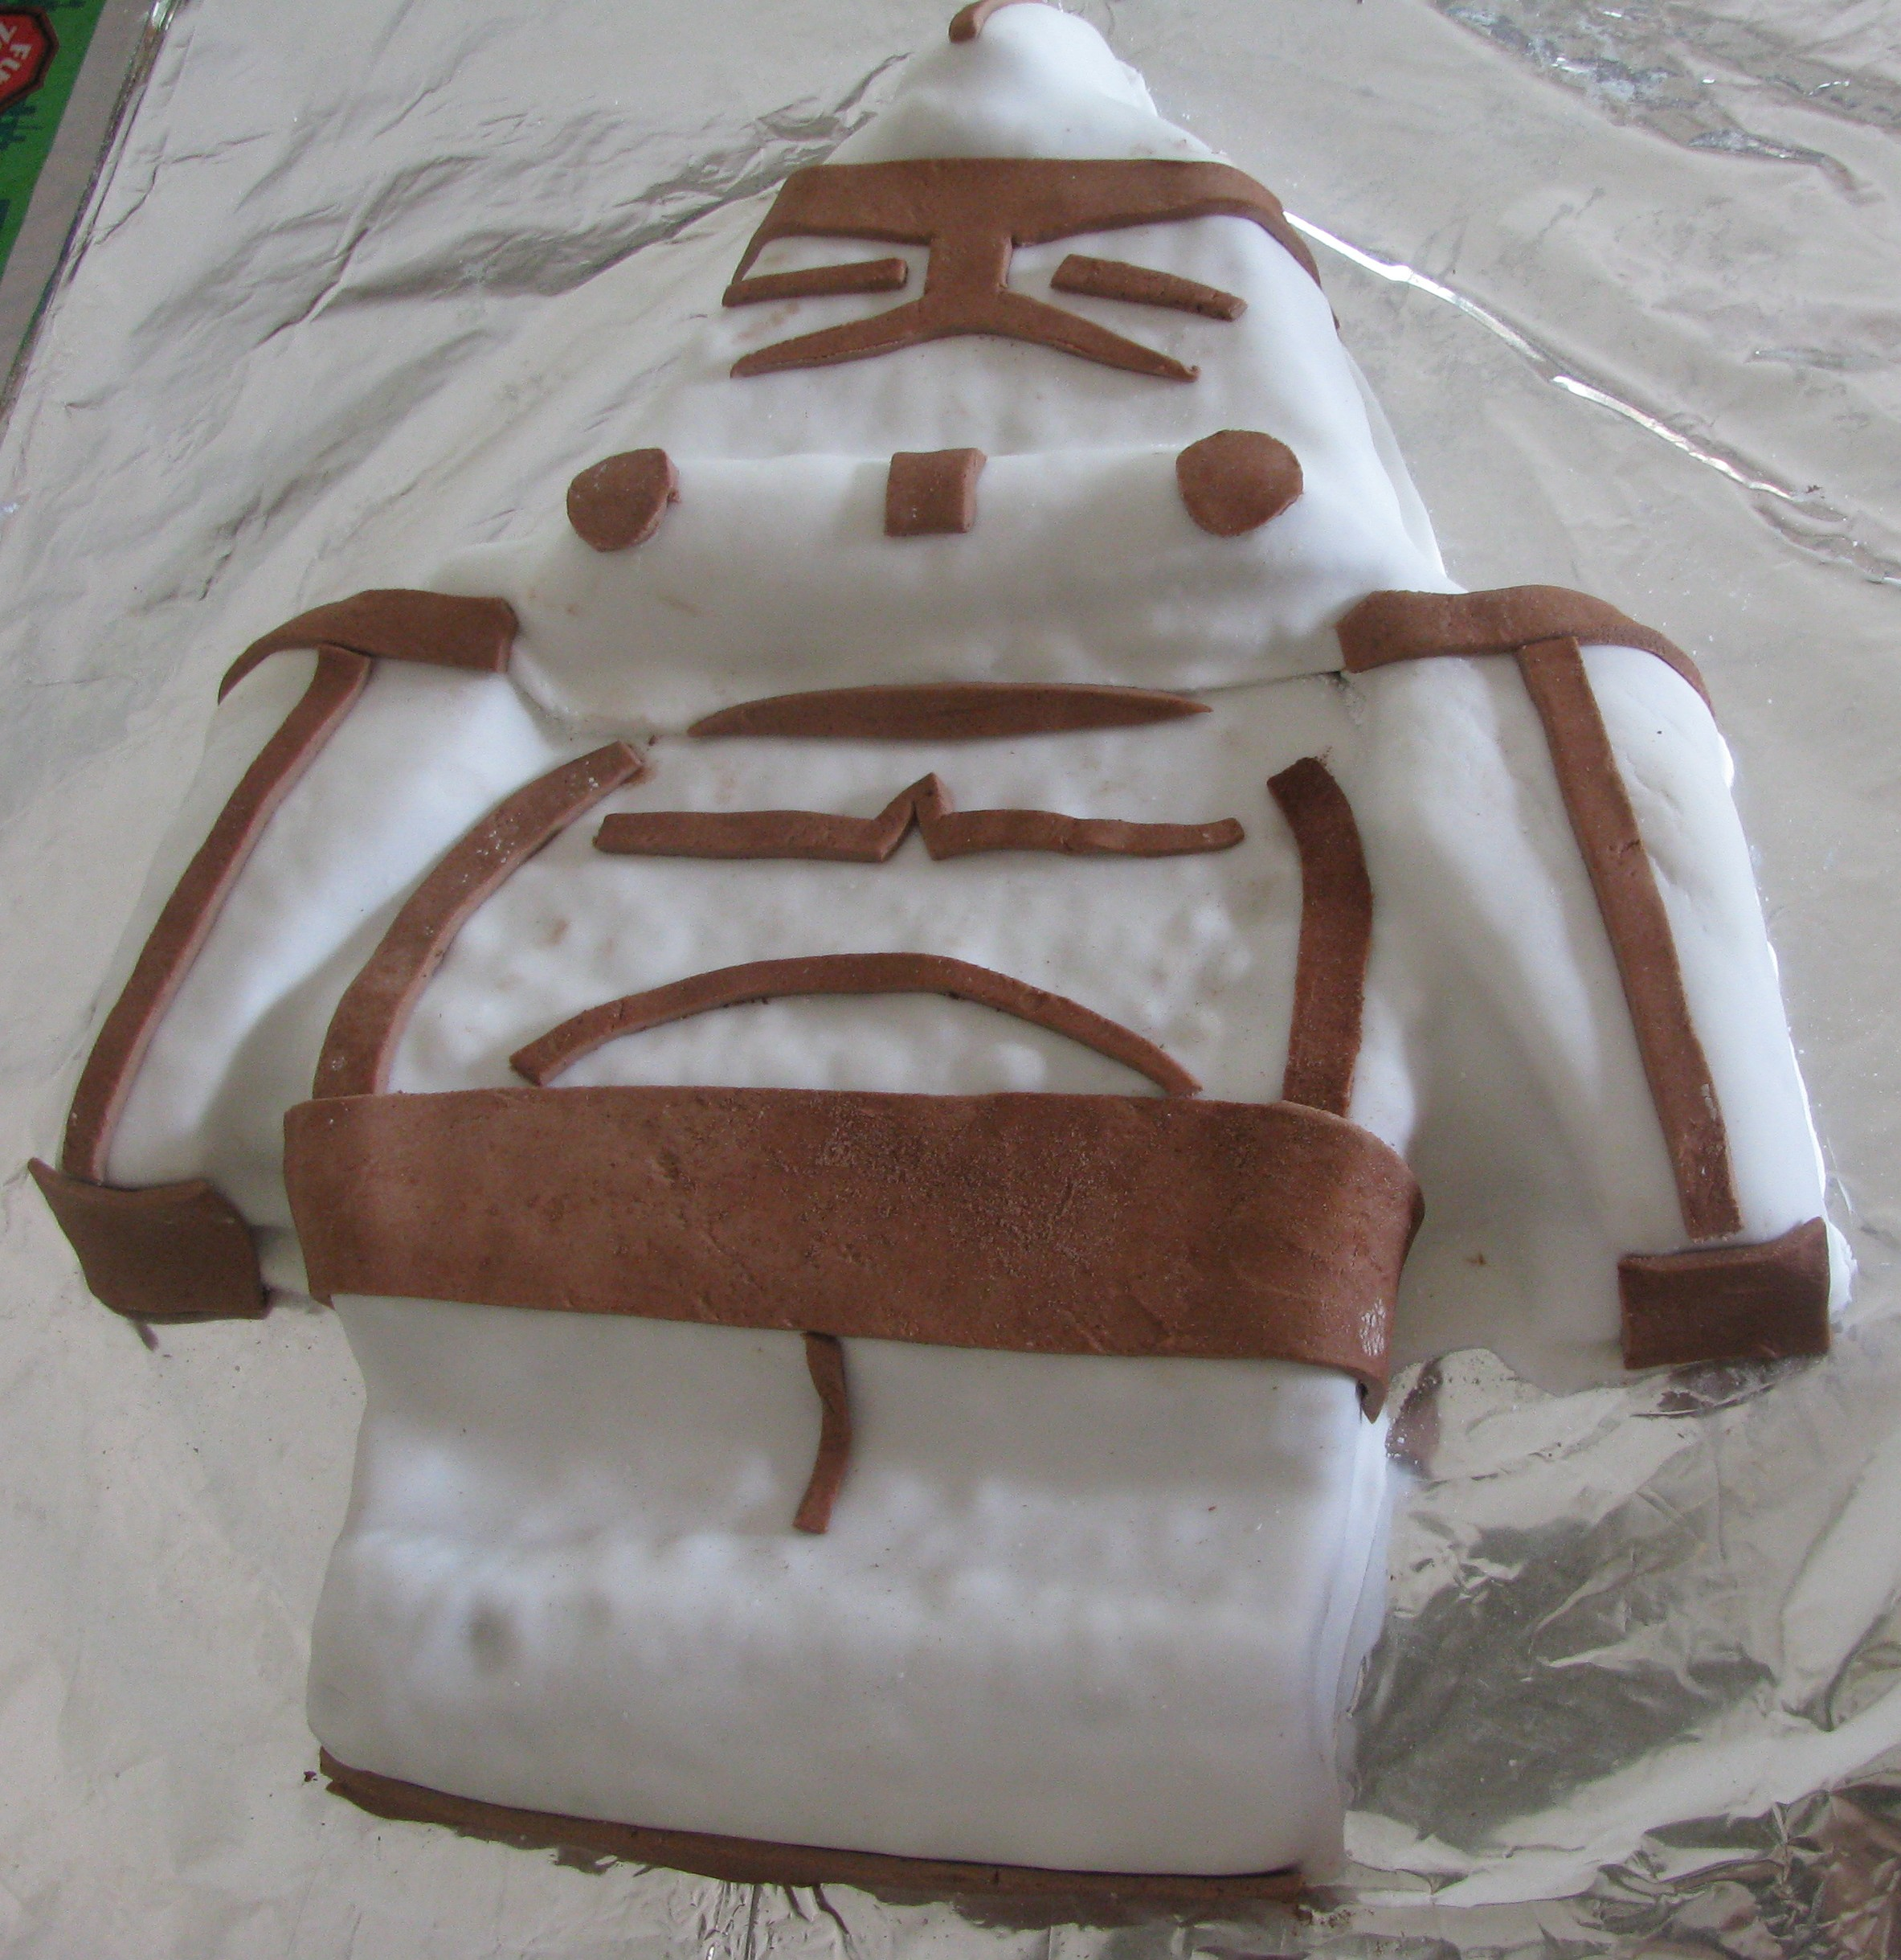 Wondrous Lego Star Wars Clone Storm Trooper Birthday Cake Parsnips And Funny Birthday Cards Online Overcheapnameinfo